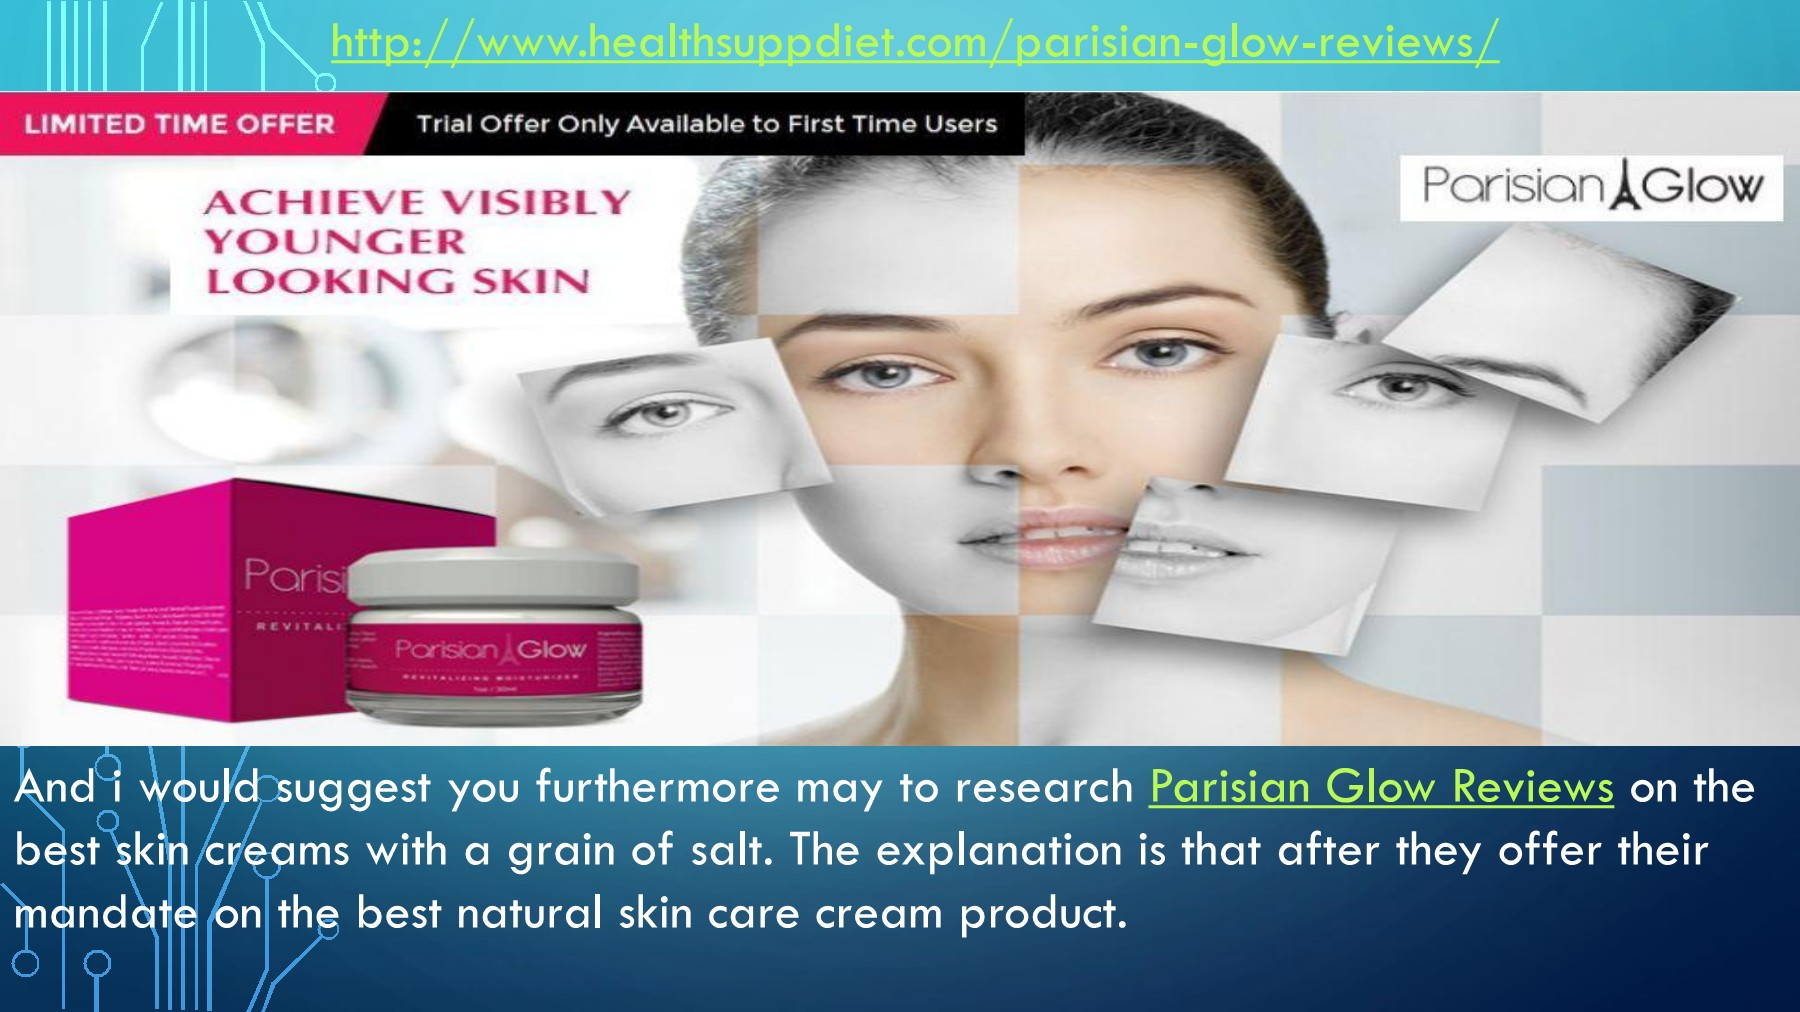 Parisian Glow Skin >> Http Www Healthsuppdiet Com Parisian Glow Reviews Pages 1 4